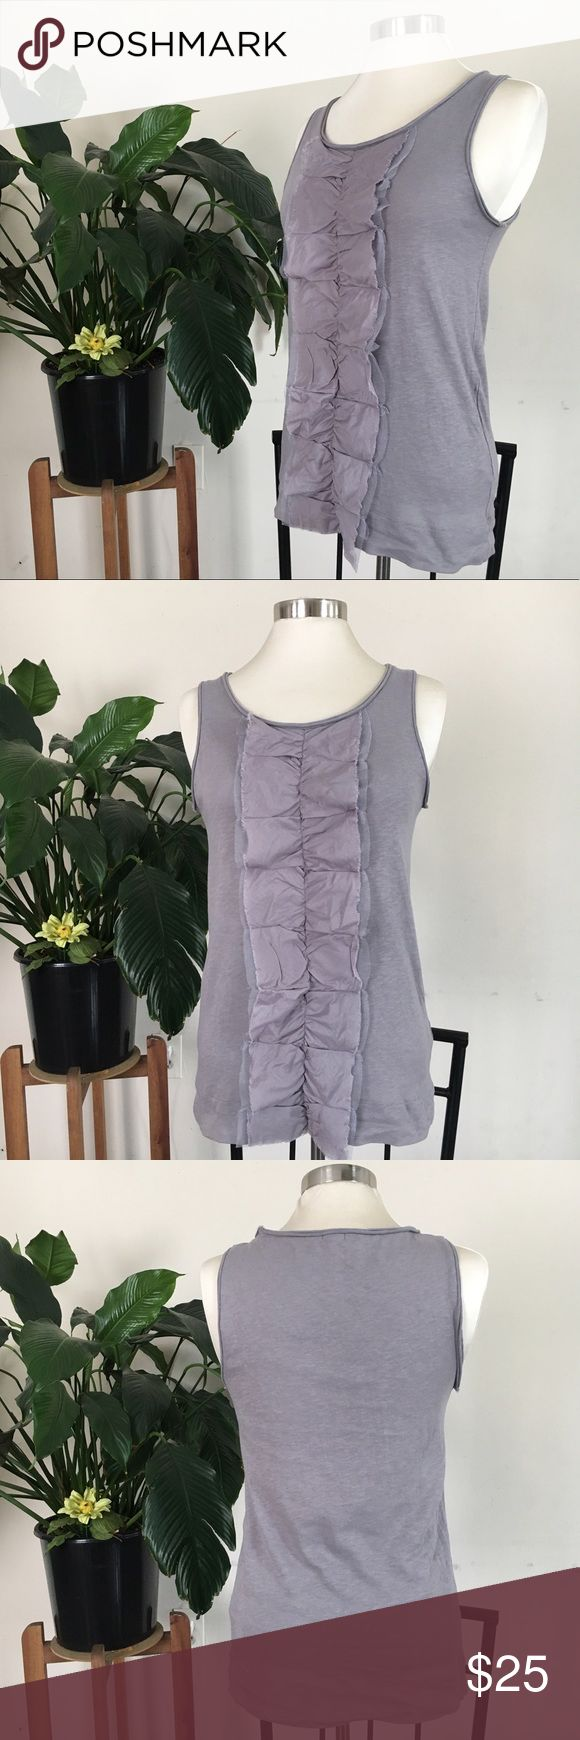 J Crew -gray top In excellent condition- gray/grey, with ruffle down the middle on the front. Sleeves less- great for summer! J. Crew Tops Tank Tops